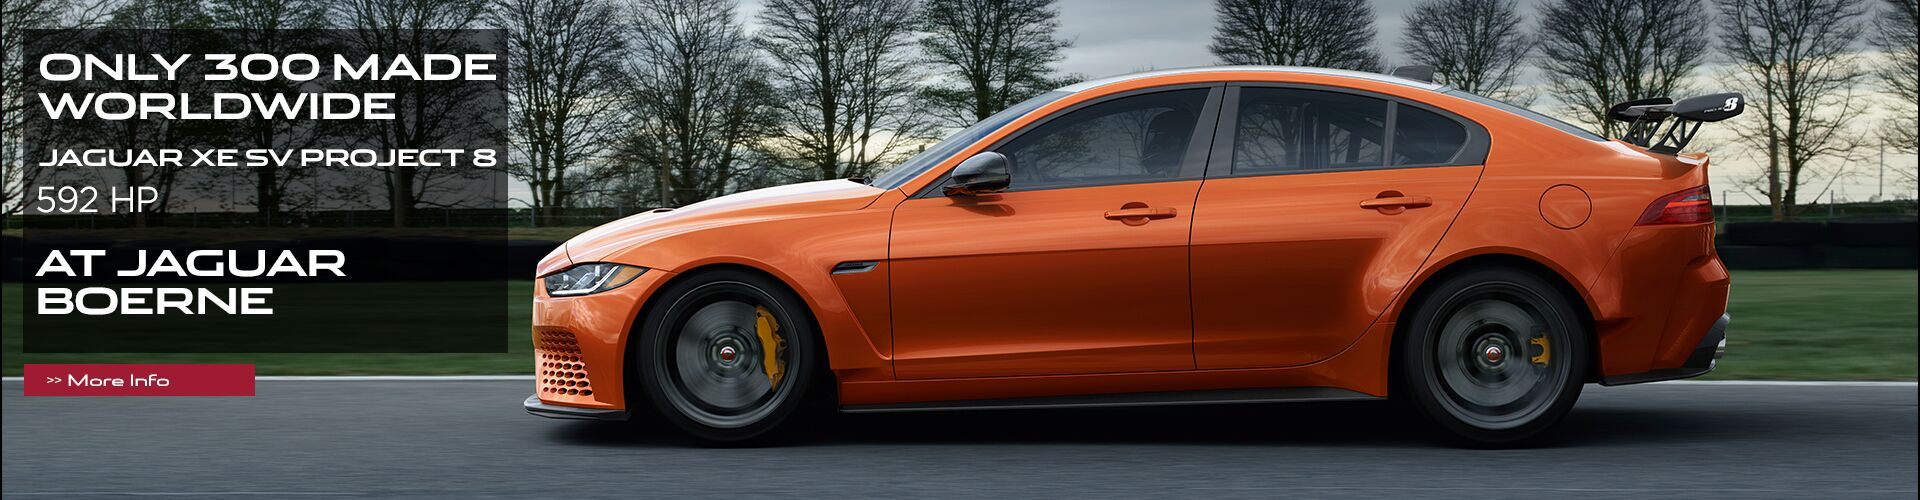 Jaguar XE SV Project 8 - Only 300 Made!